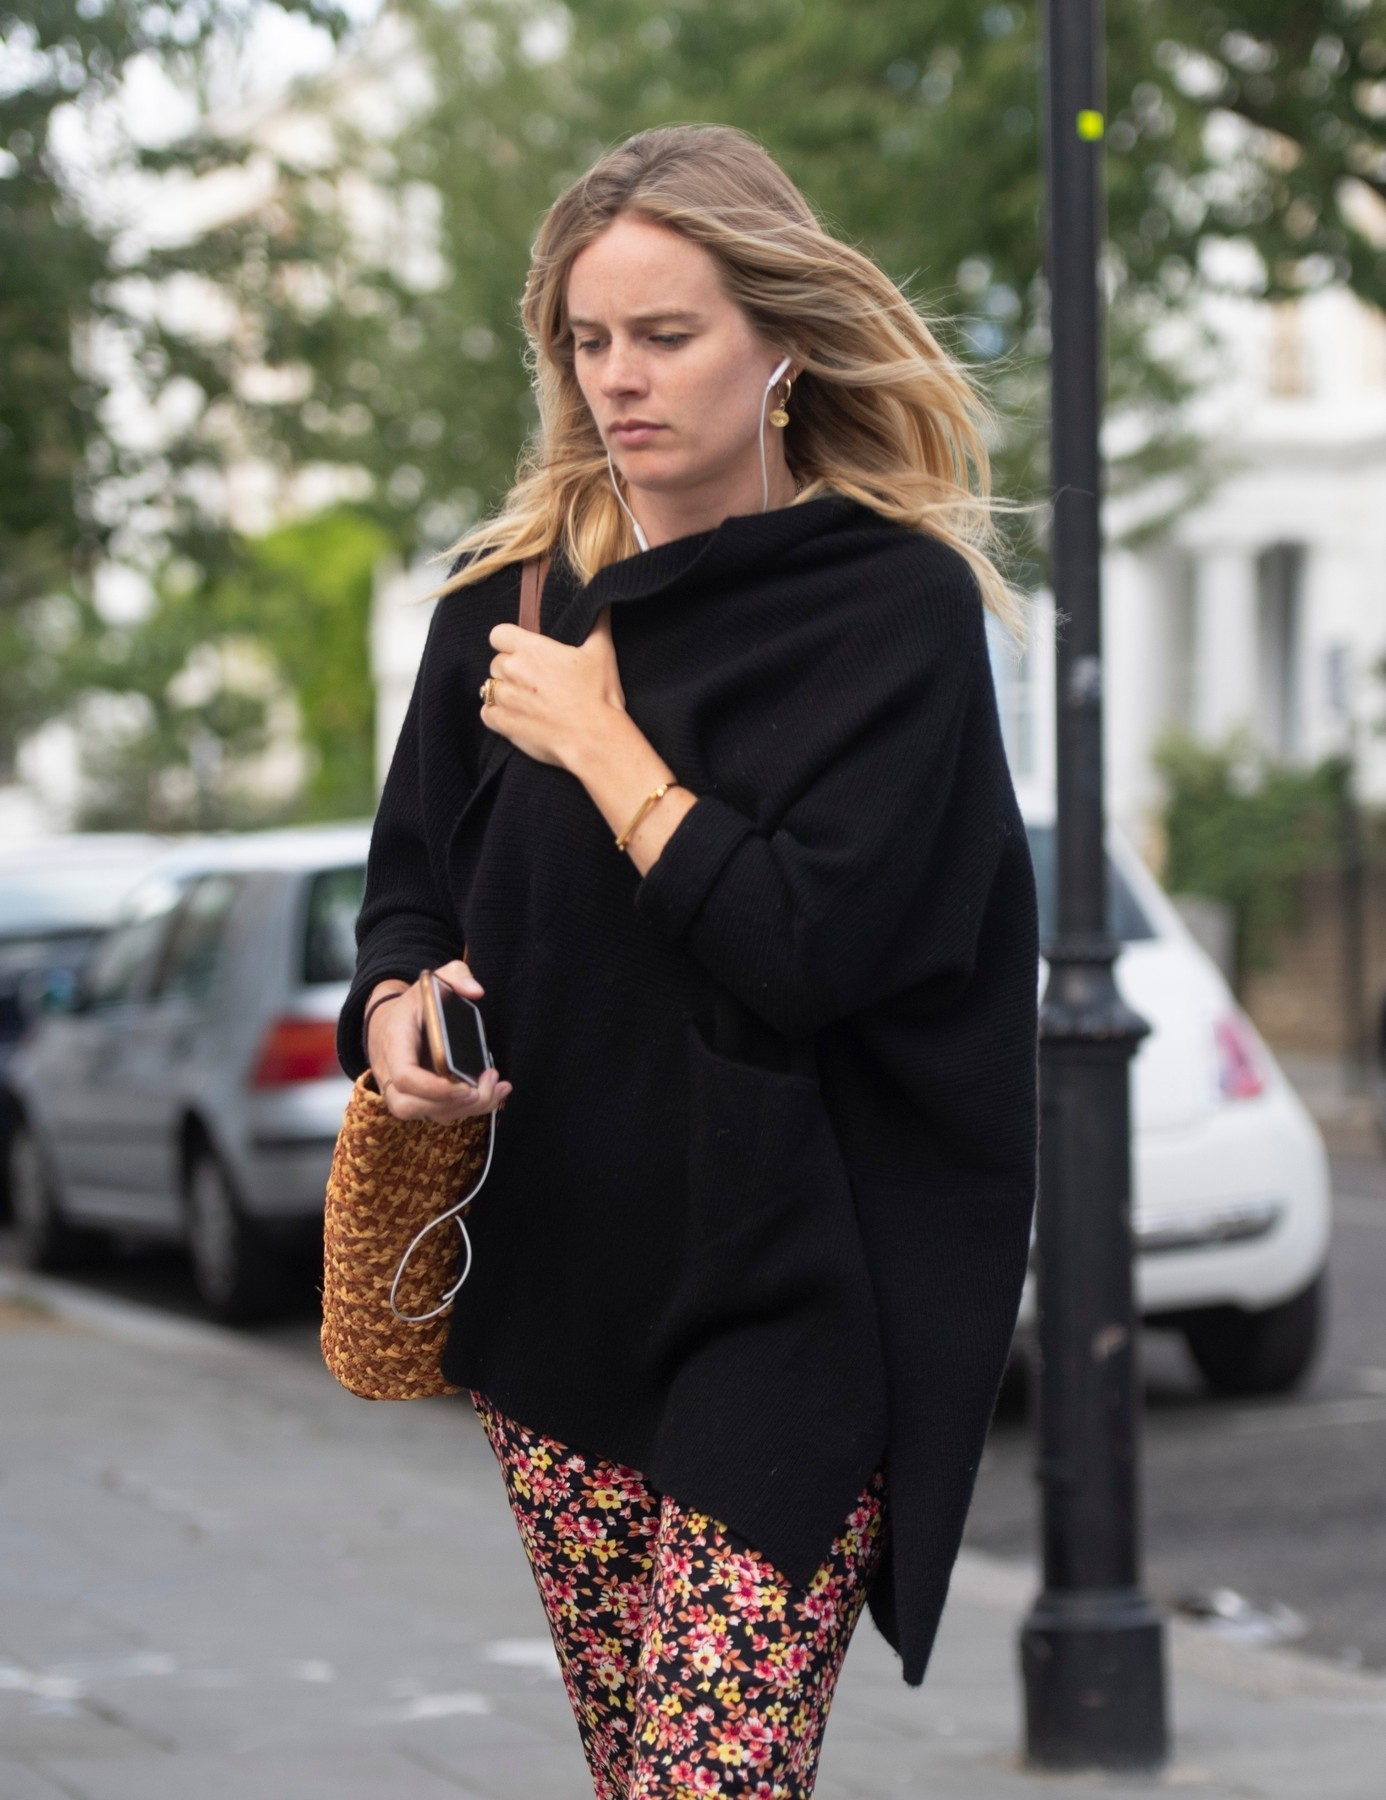 London, UNITED KINGDOM  - *PREMIUM-EXCLUSIVE*  - *MUST CALL FOR PRICING* *STRICTLY NO MAIL ONLINE OR ANY OTHER UK WEBSITES* *STRICTLY NOT AVAILABLE FOR ANY SUBSCRIPTION DEALS*  Newly engaged Cressida Bonas cuddles a fluffy dog as shows off her enormous engagement ring to a friend as close ups reveal stunning detail of the ruby and diamond set ring.   The actress and ex girlfriend of Prince Harry who is set to marry Harry Wentworth Stanley, couldn't hide her joy as she lunched with a friend at an al fresco cafe in Notting Hill.   It is rumoured that ex Prince Harry will attend the wedding with wife Meghan Markle.  *UK Clients - Pictures Containing Children Please Pixelate Face Prior To Publication*,Image: 468106805, License: Rights-managed, Restrictions: RIGHTS: WORLDWIDE EXCEPT IN AUSTRIA, GERMANY, RUSSIA, SWITZERLAND, Model Release: no